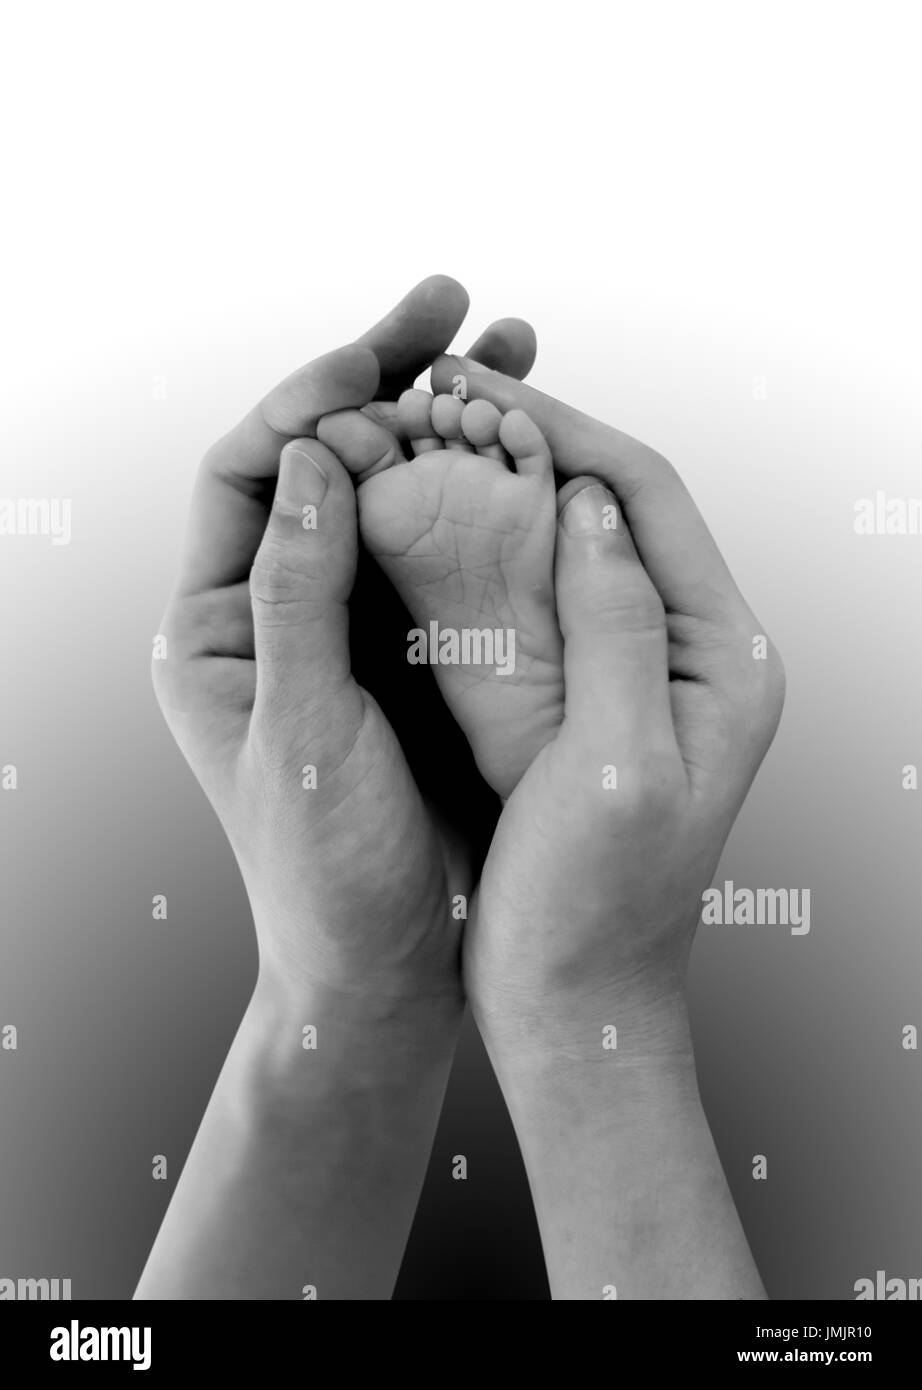 Baby's feet in mothers hands on black and white. Isolated on white background with copy space - Stock Image